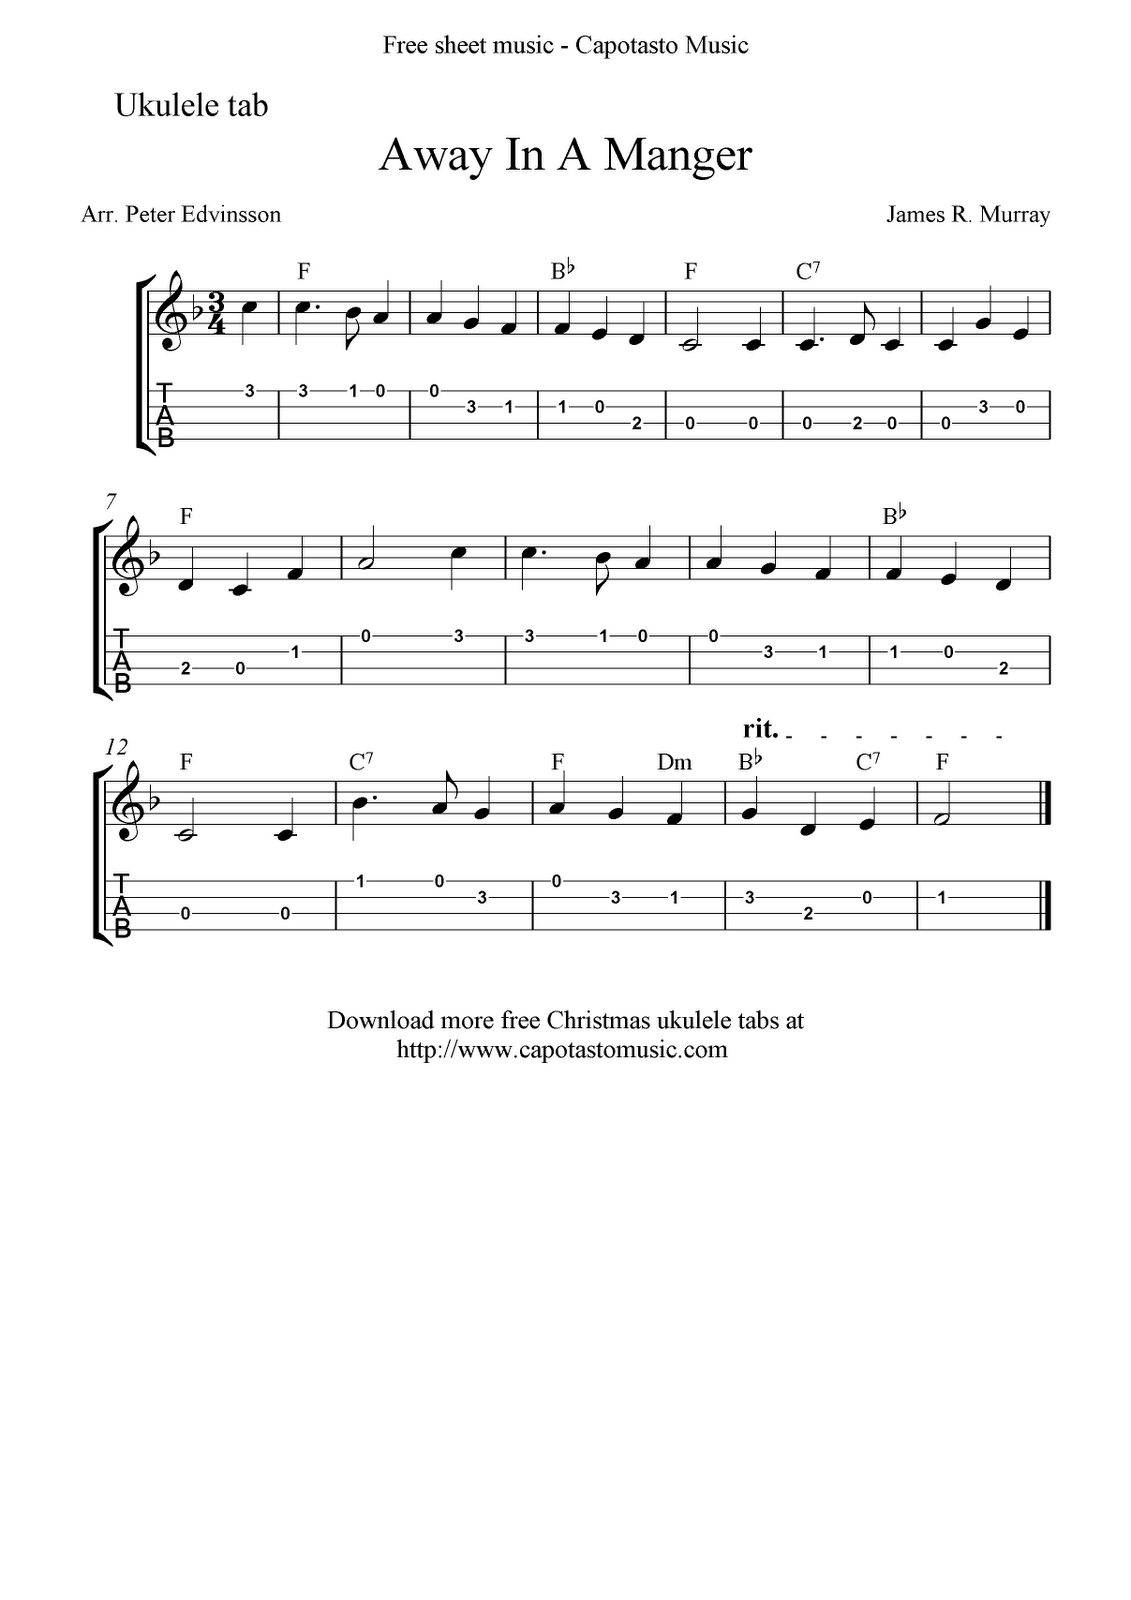 """Away In A Manger"" Ukulele Sheet Music Free Printable"